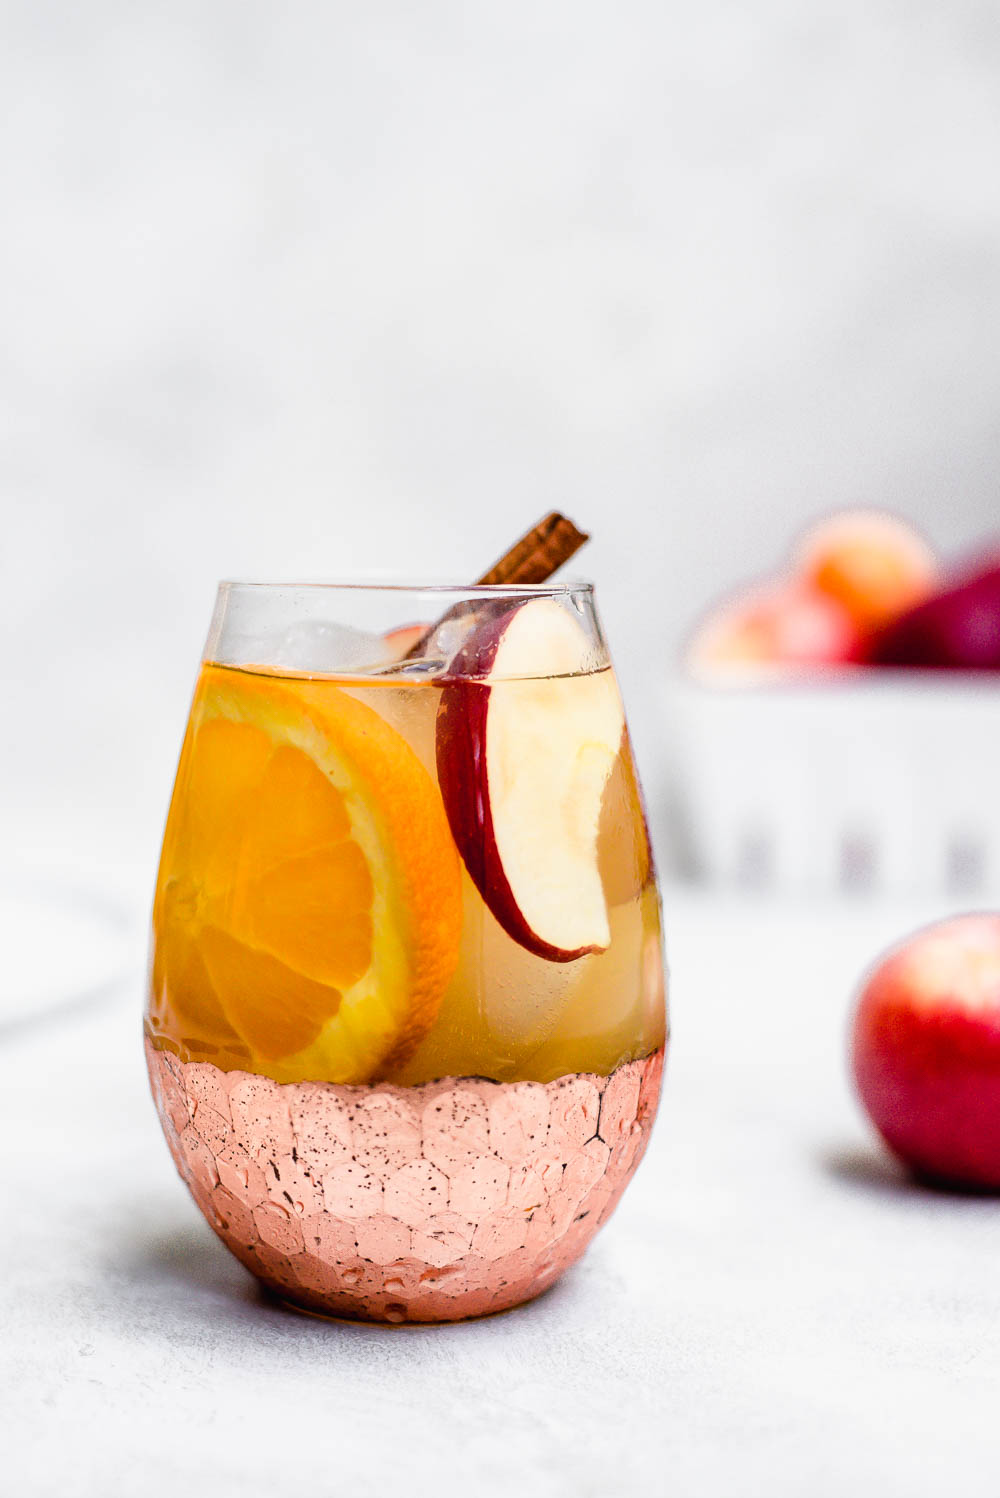 apple cider sangria in glass with cinnamon stick garnish